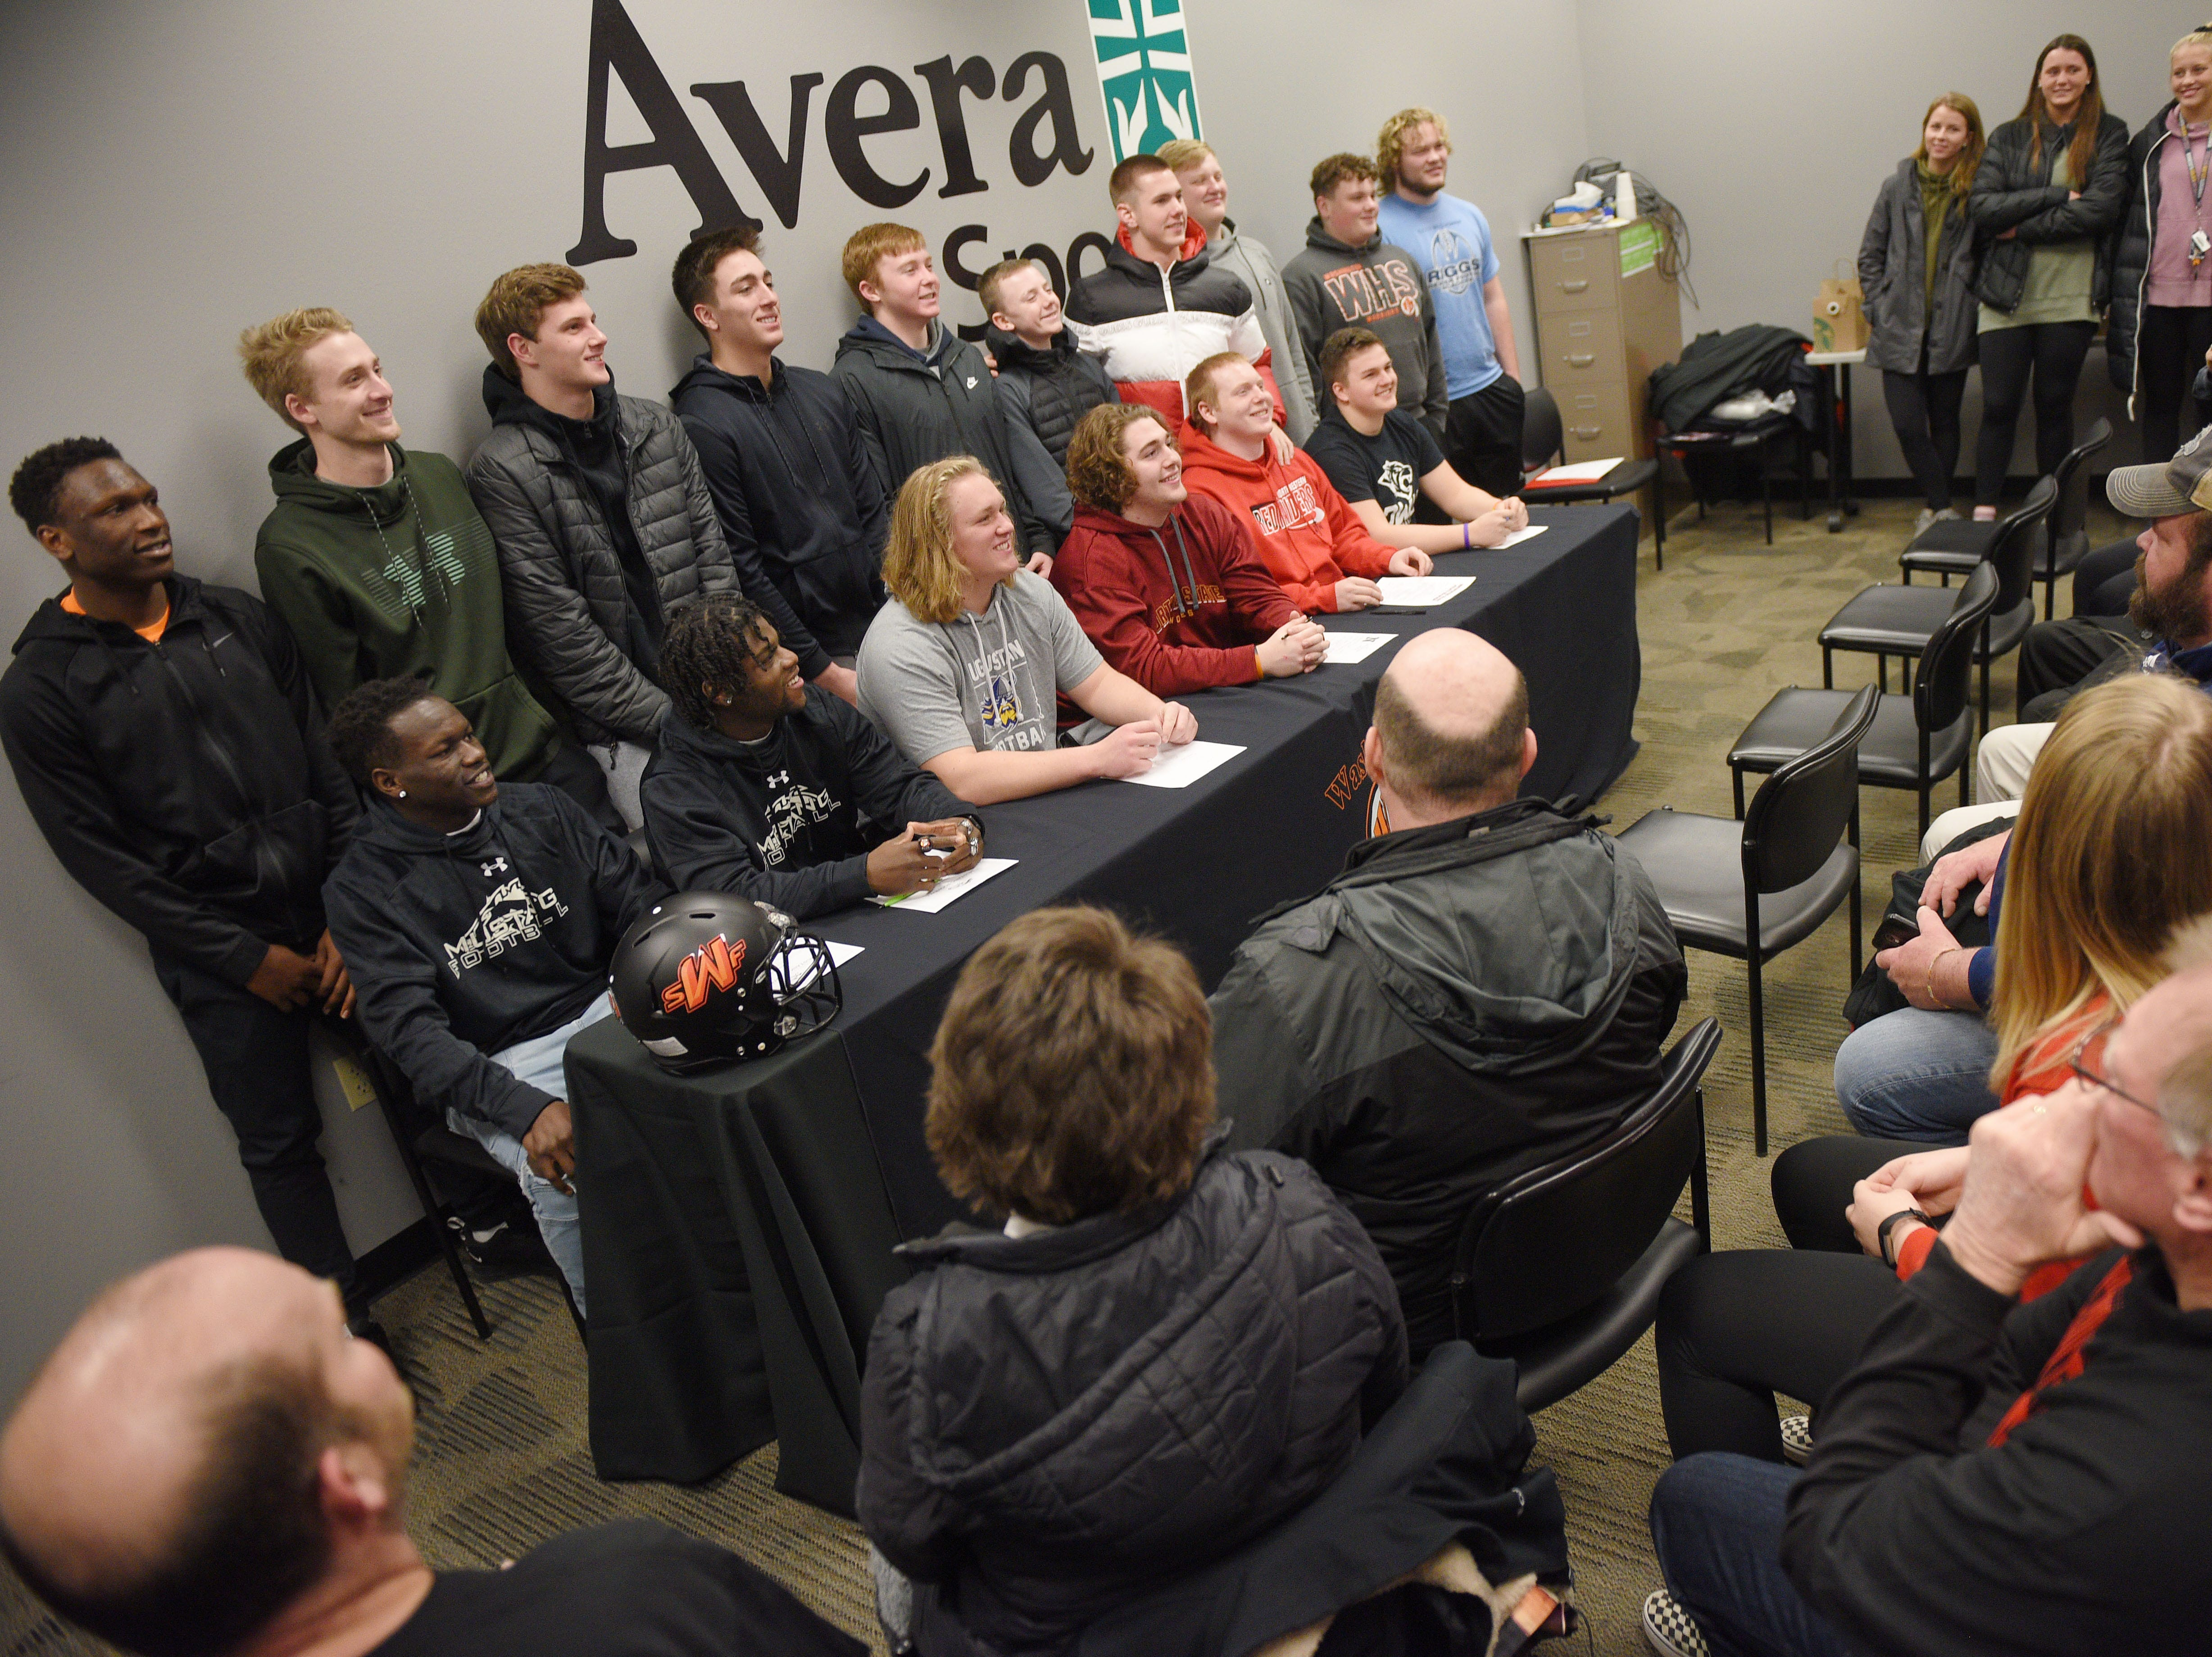 Washington signing day Wednesday, Feb. 6, at Avera Sports Institute in Sioux Falls.